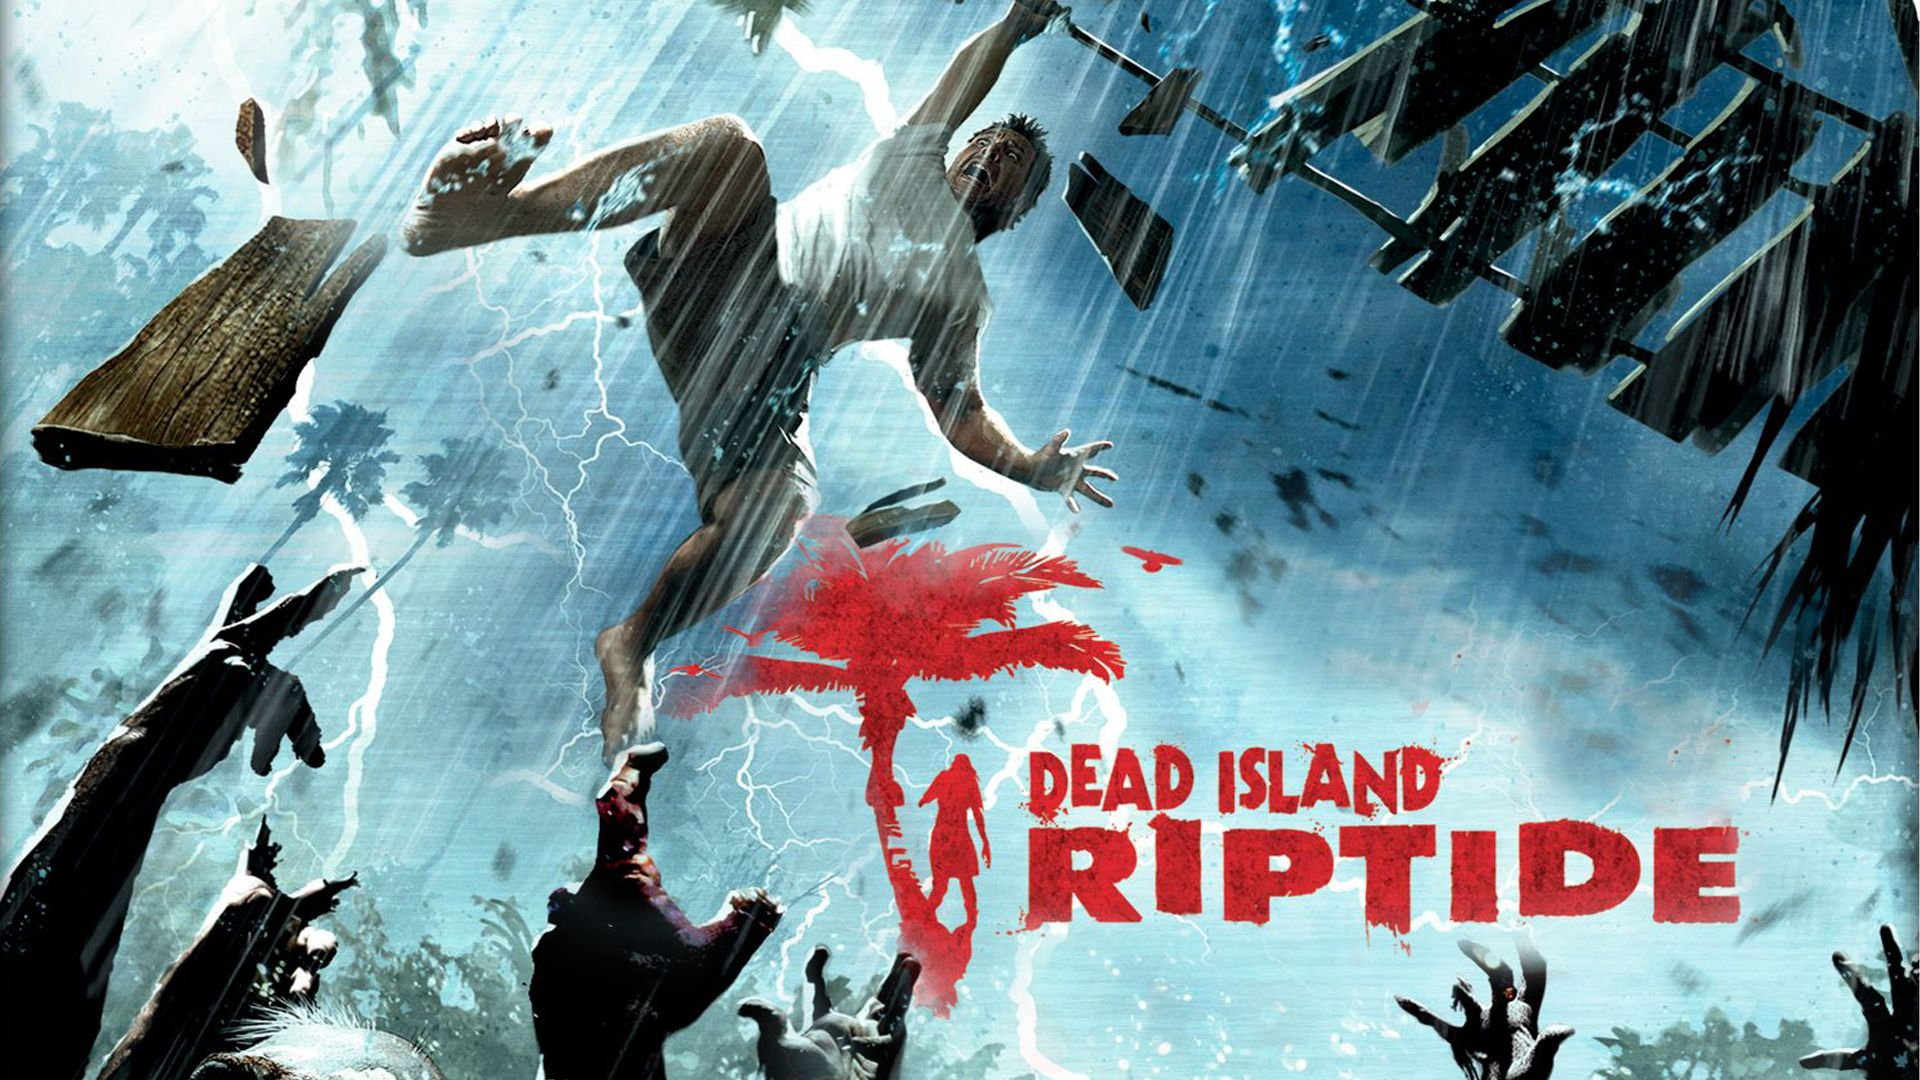 'Dead Island' Zombie Game Movie in the Works